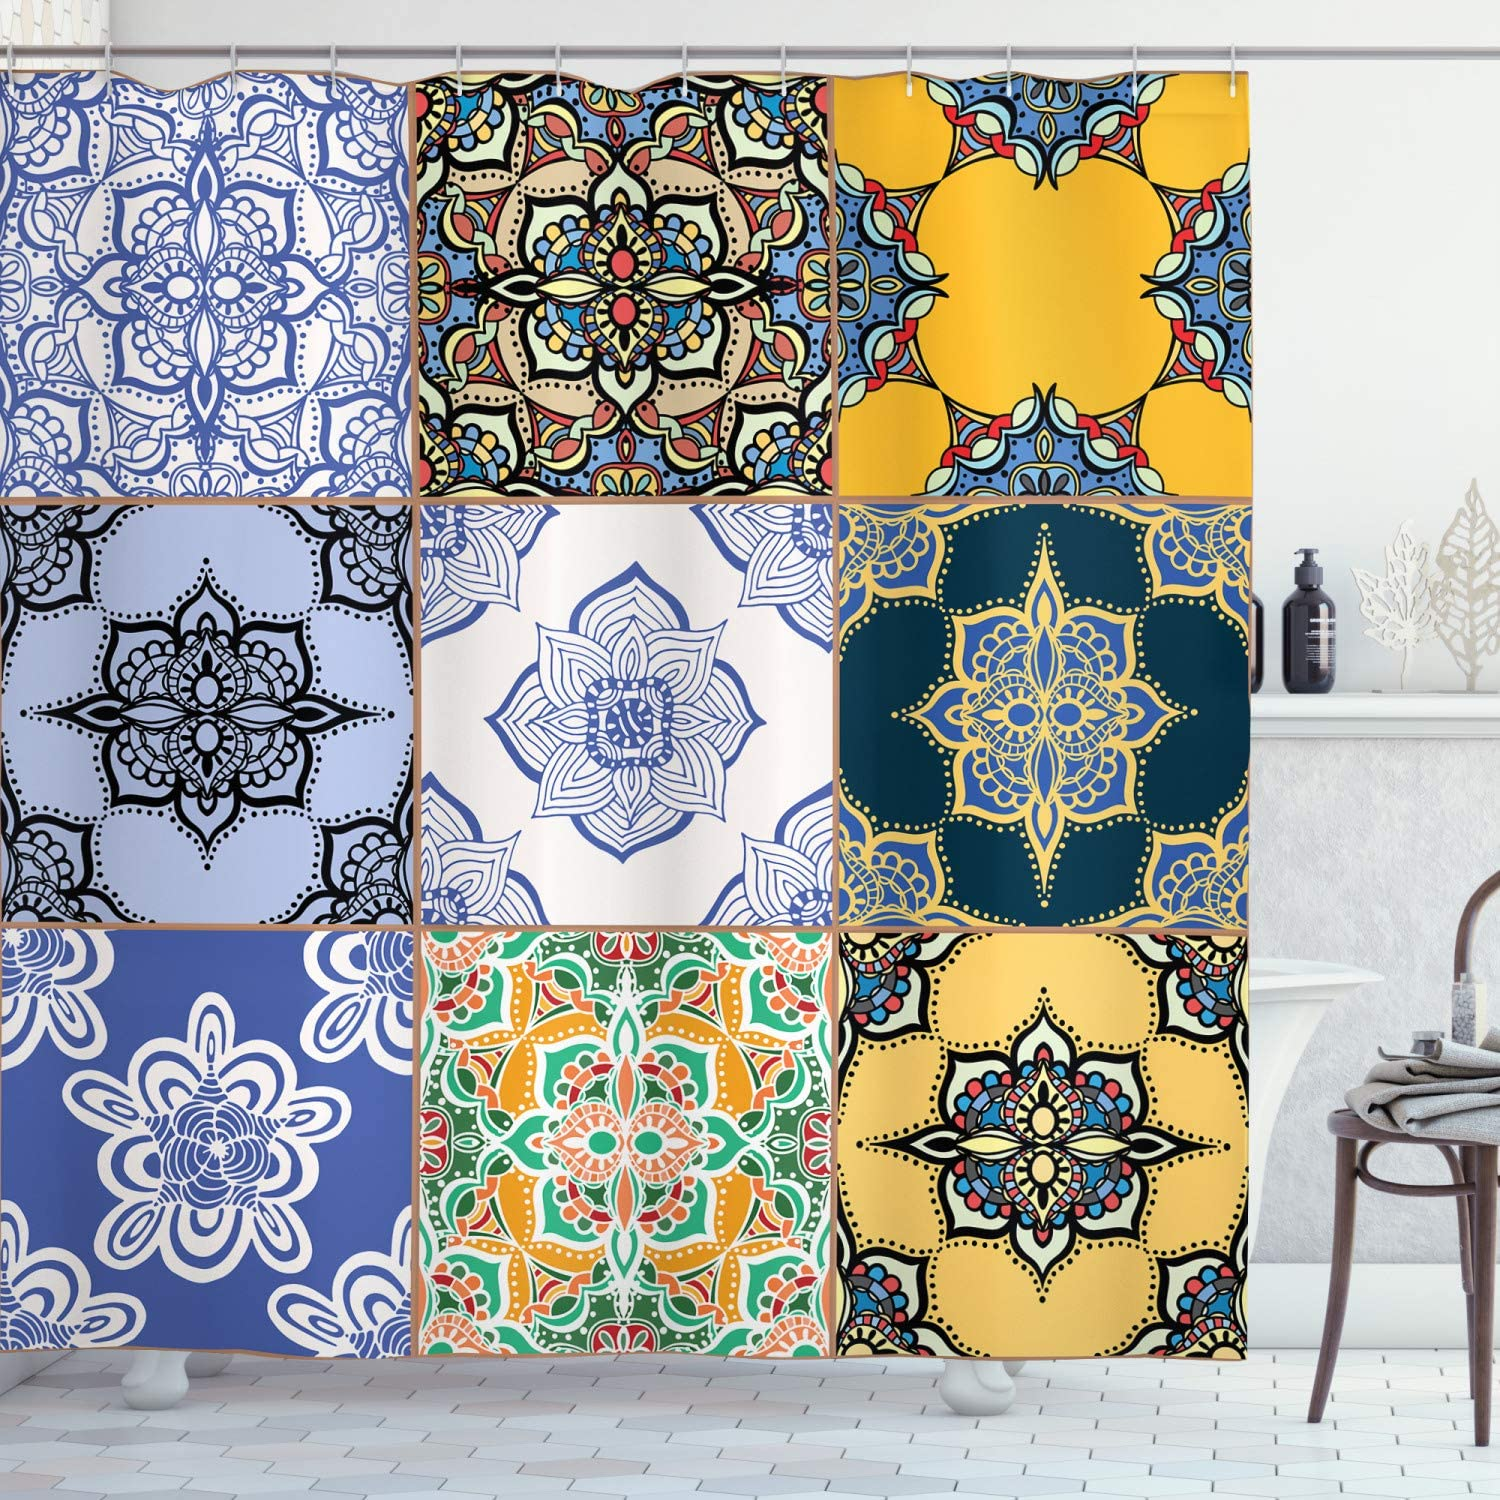 Ambesonne Moroccan Shower Curtain, Portuguese Tile Patterns Various Tones Textures Bohemian Print, Cloth Fabric Bathroom Decor Set with Hooks, 70